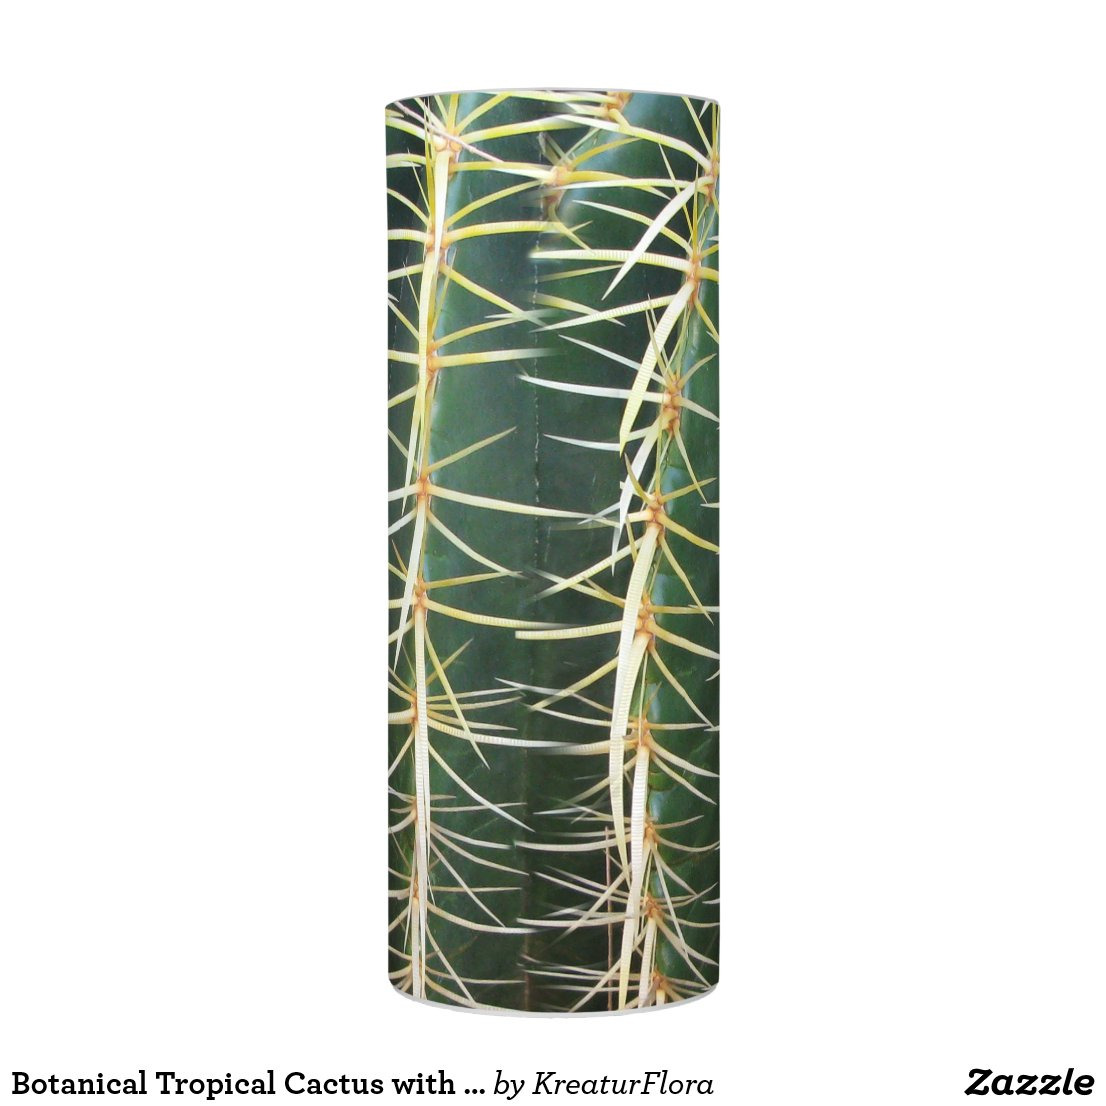 Botanical Tropical Cactus with Pins